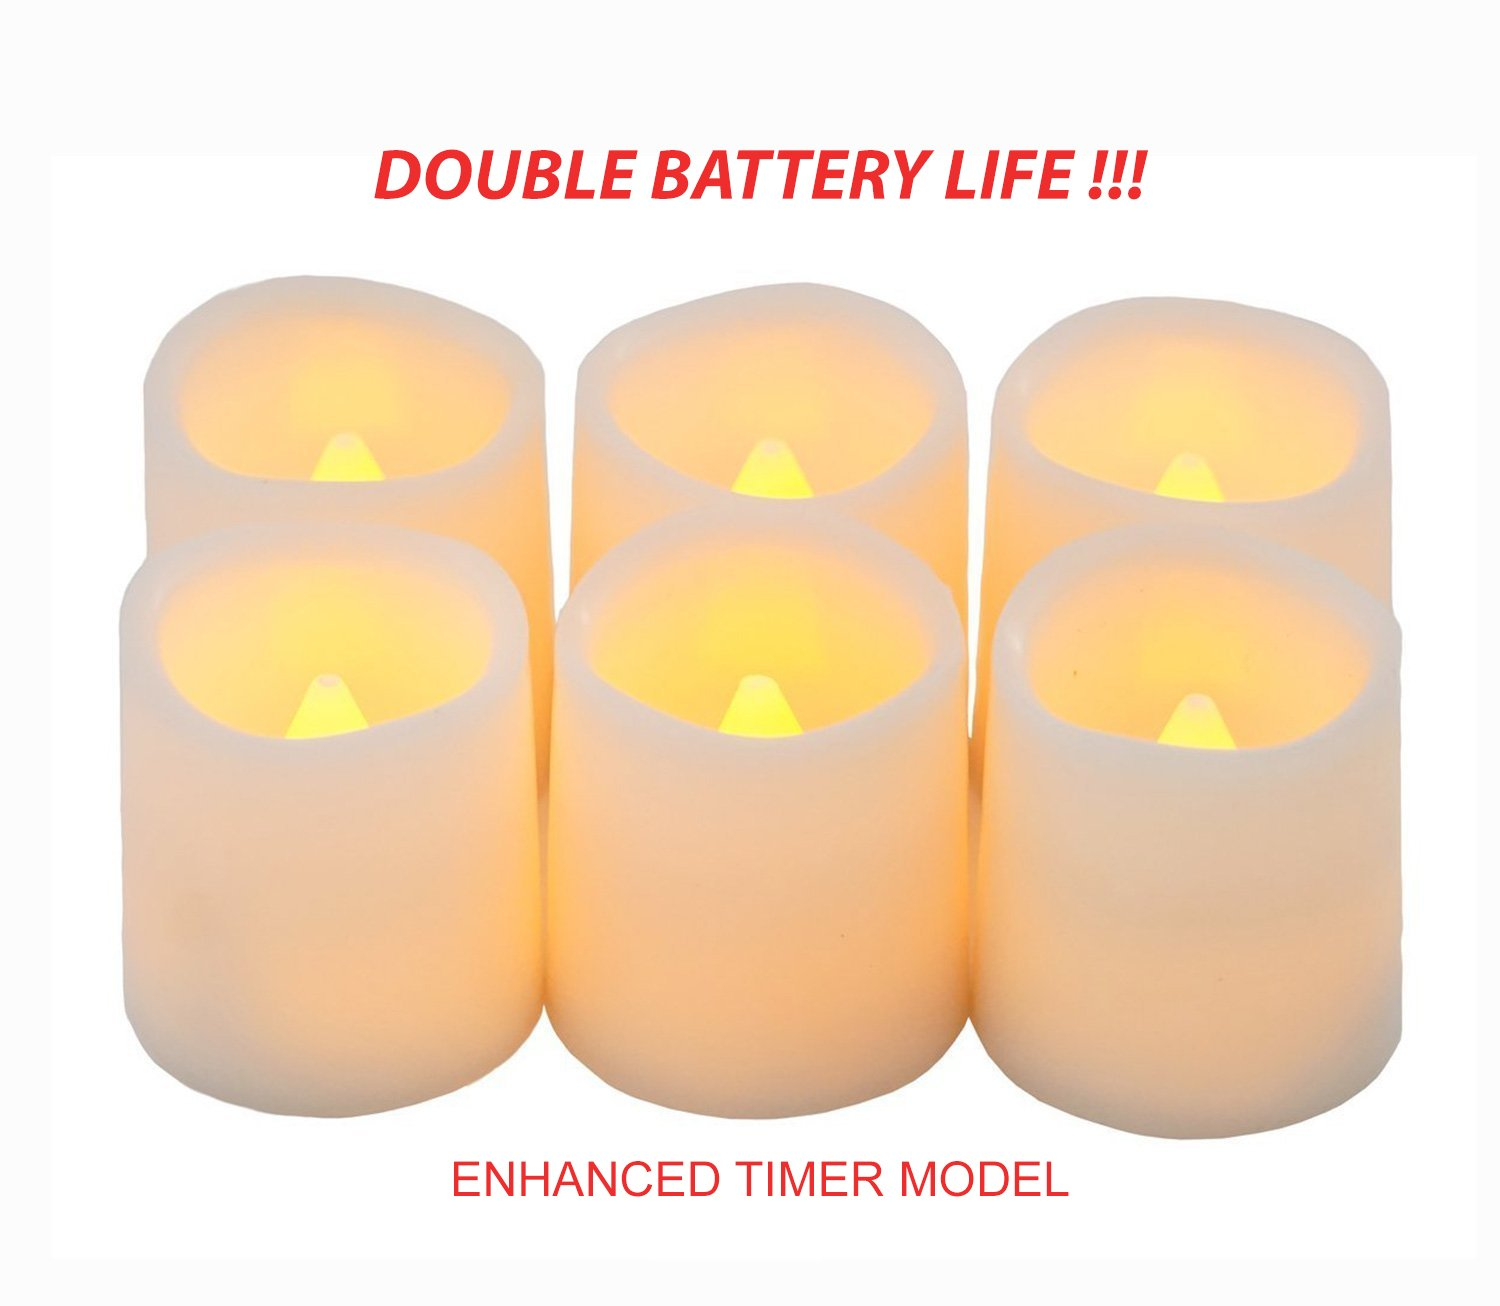 Festival Delights Timer Flameless Candles Premium IC-Controlled Soft Flickering Votive Battery Operated Candles, 150+ Hours of Lighting, 5H Timer, Battery Included, Dia. 1.5''x1.75''H